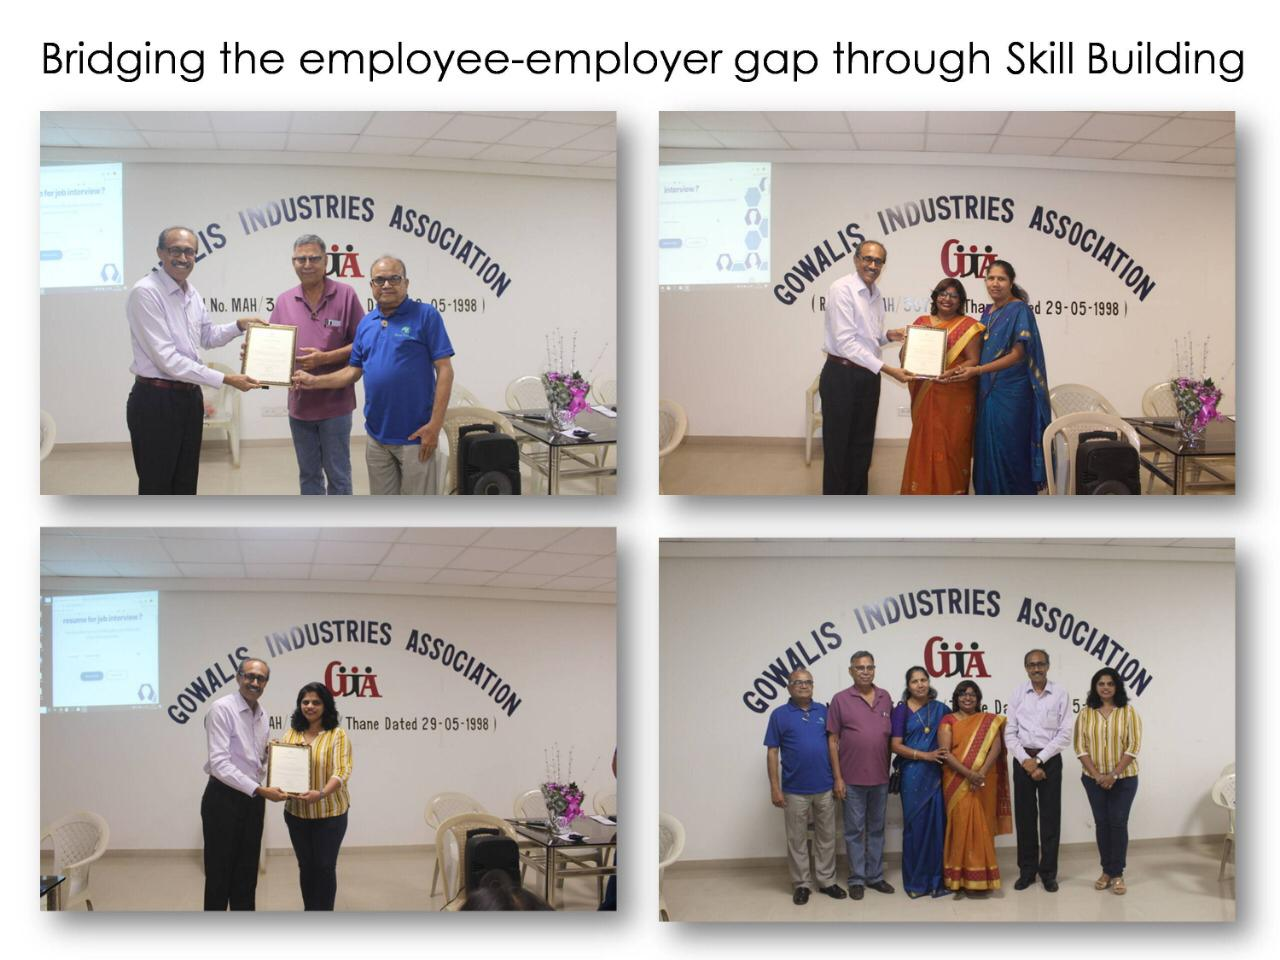 Bridging the employee-employer gap